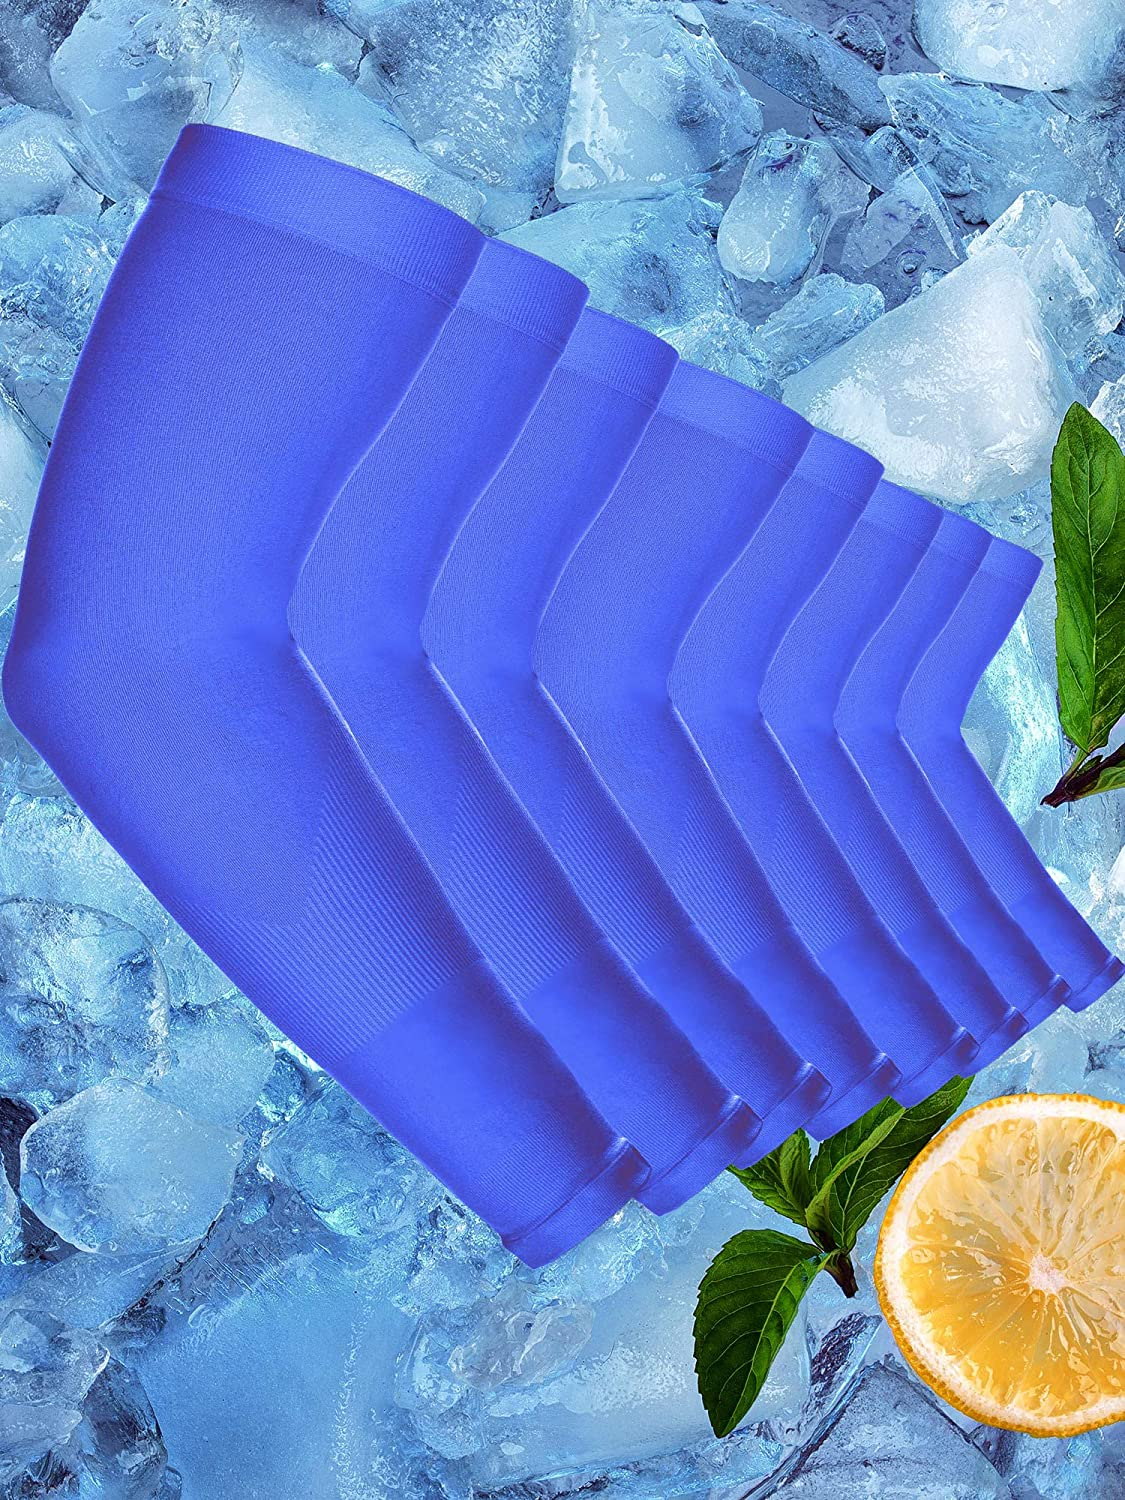 8 Pairs Unisex Cooling Arm Sleeves Ice Silk UV Sun Protective Glove